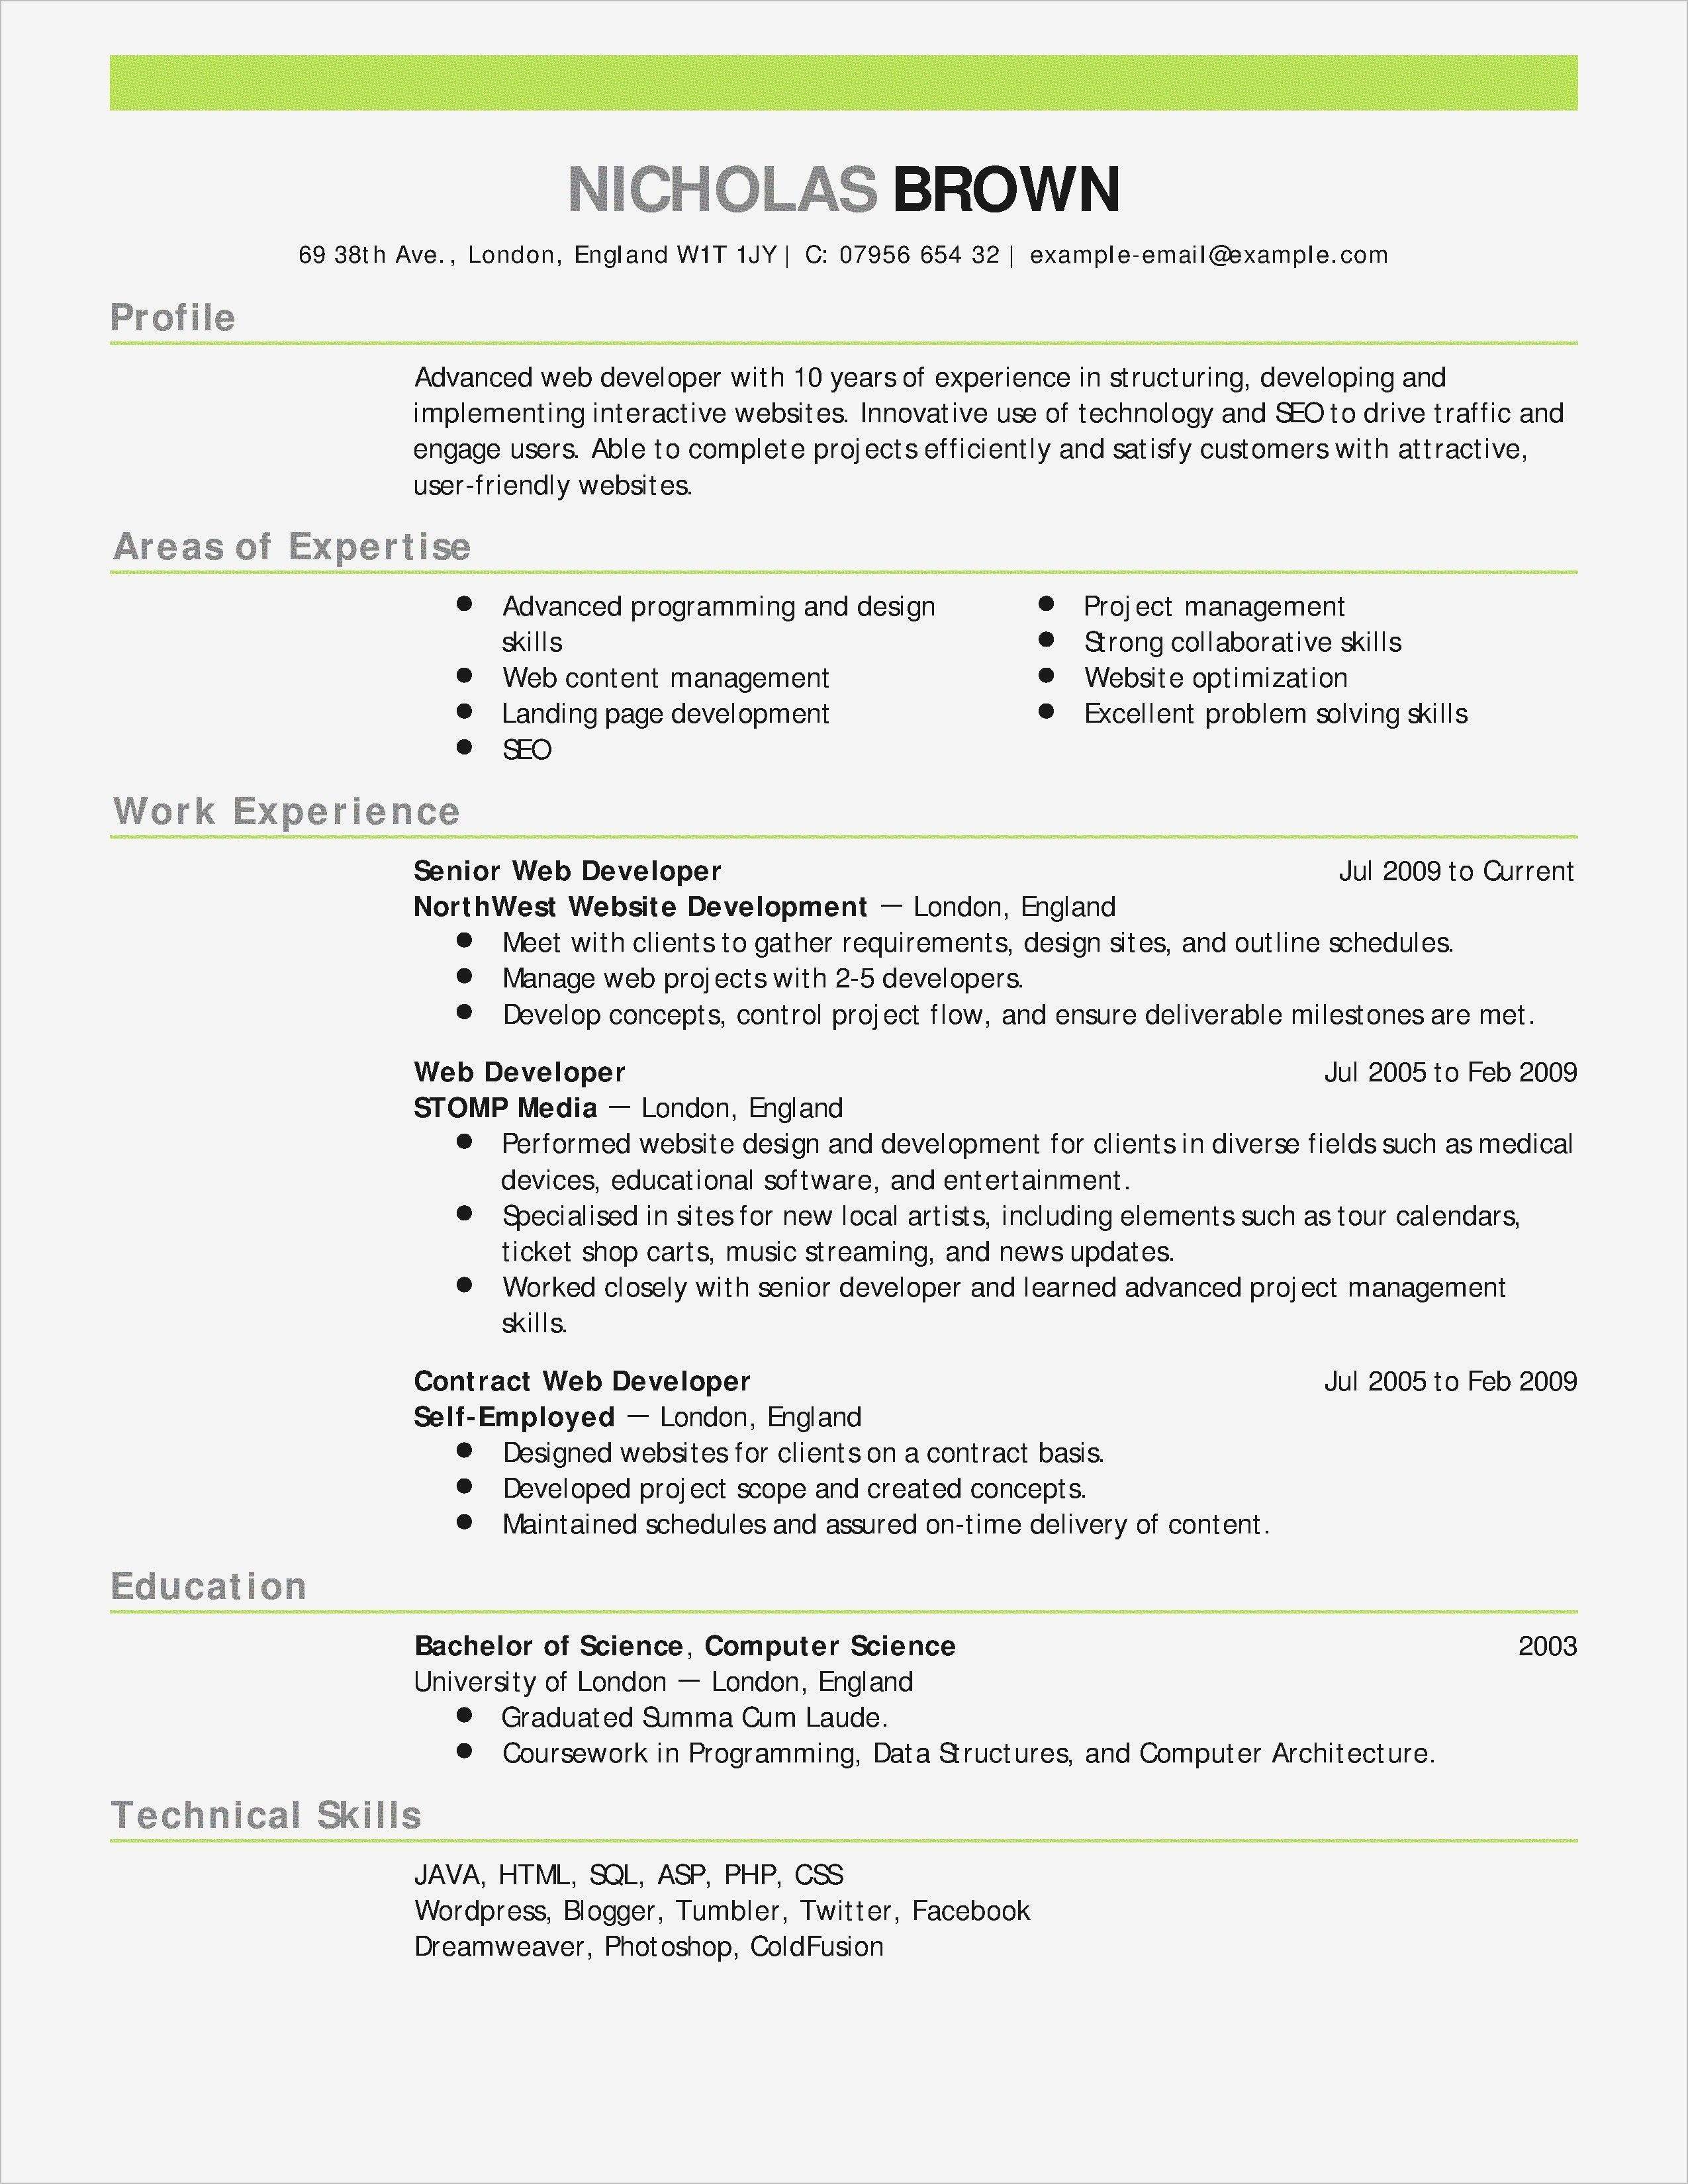 Cv Template Youth Central Central Cvtemplate Template Youth Teaching Resume Good Resume Examples Job Resume Examples